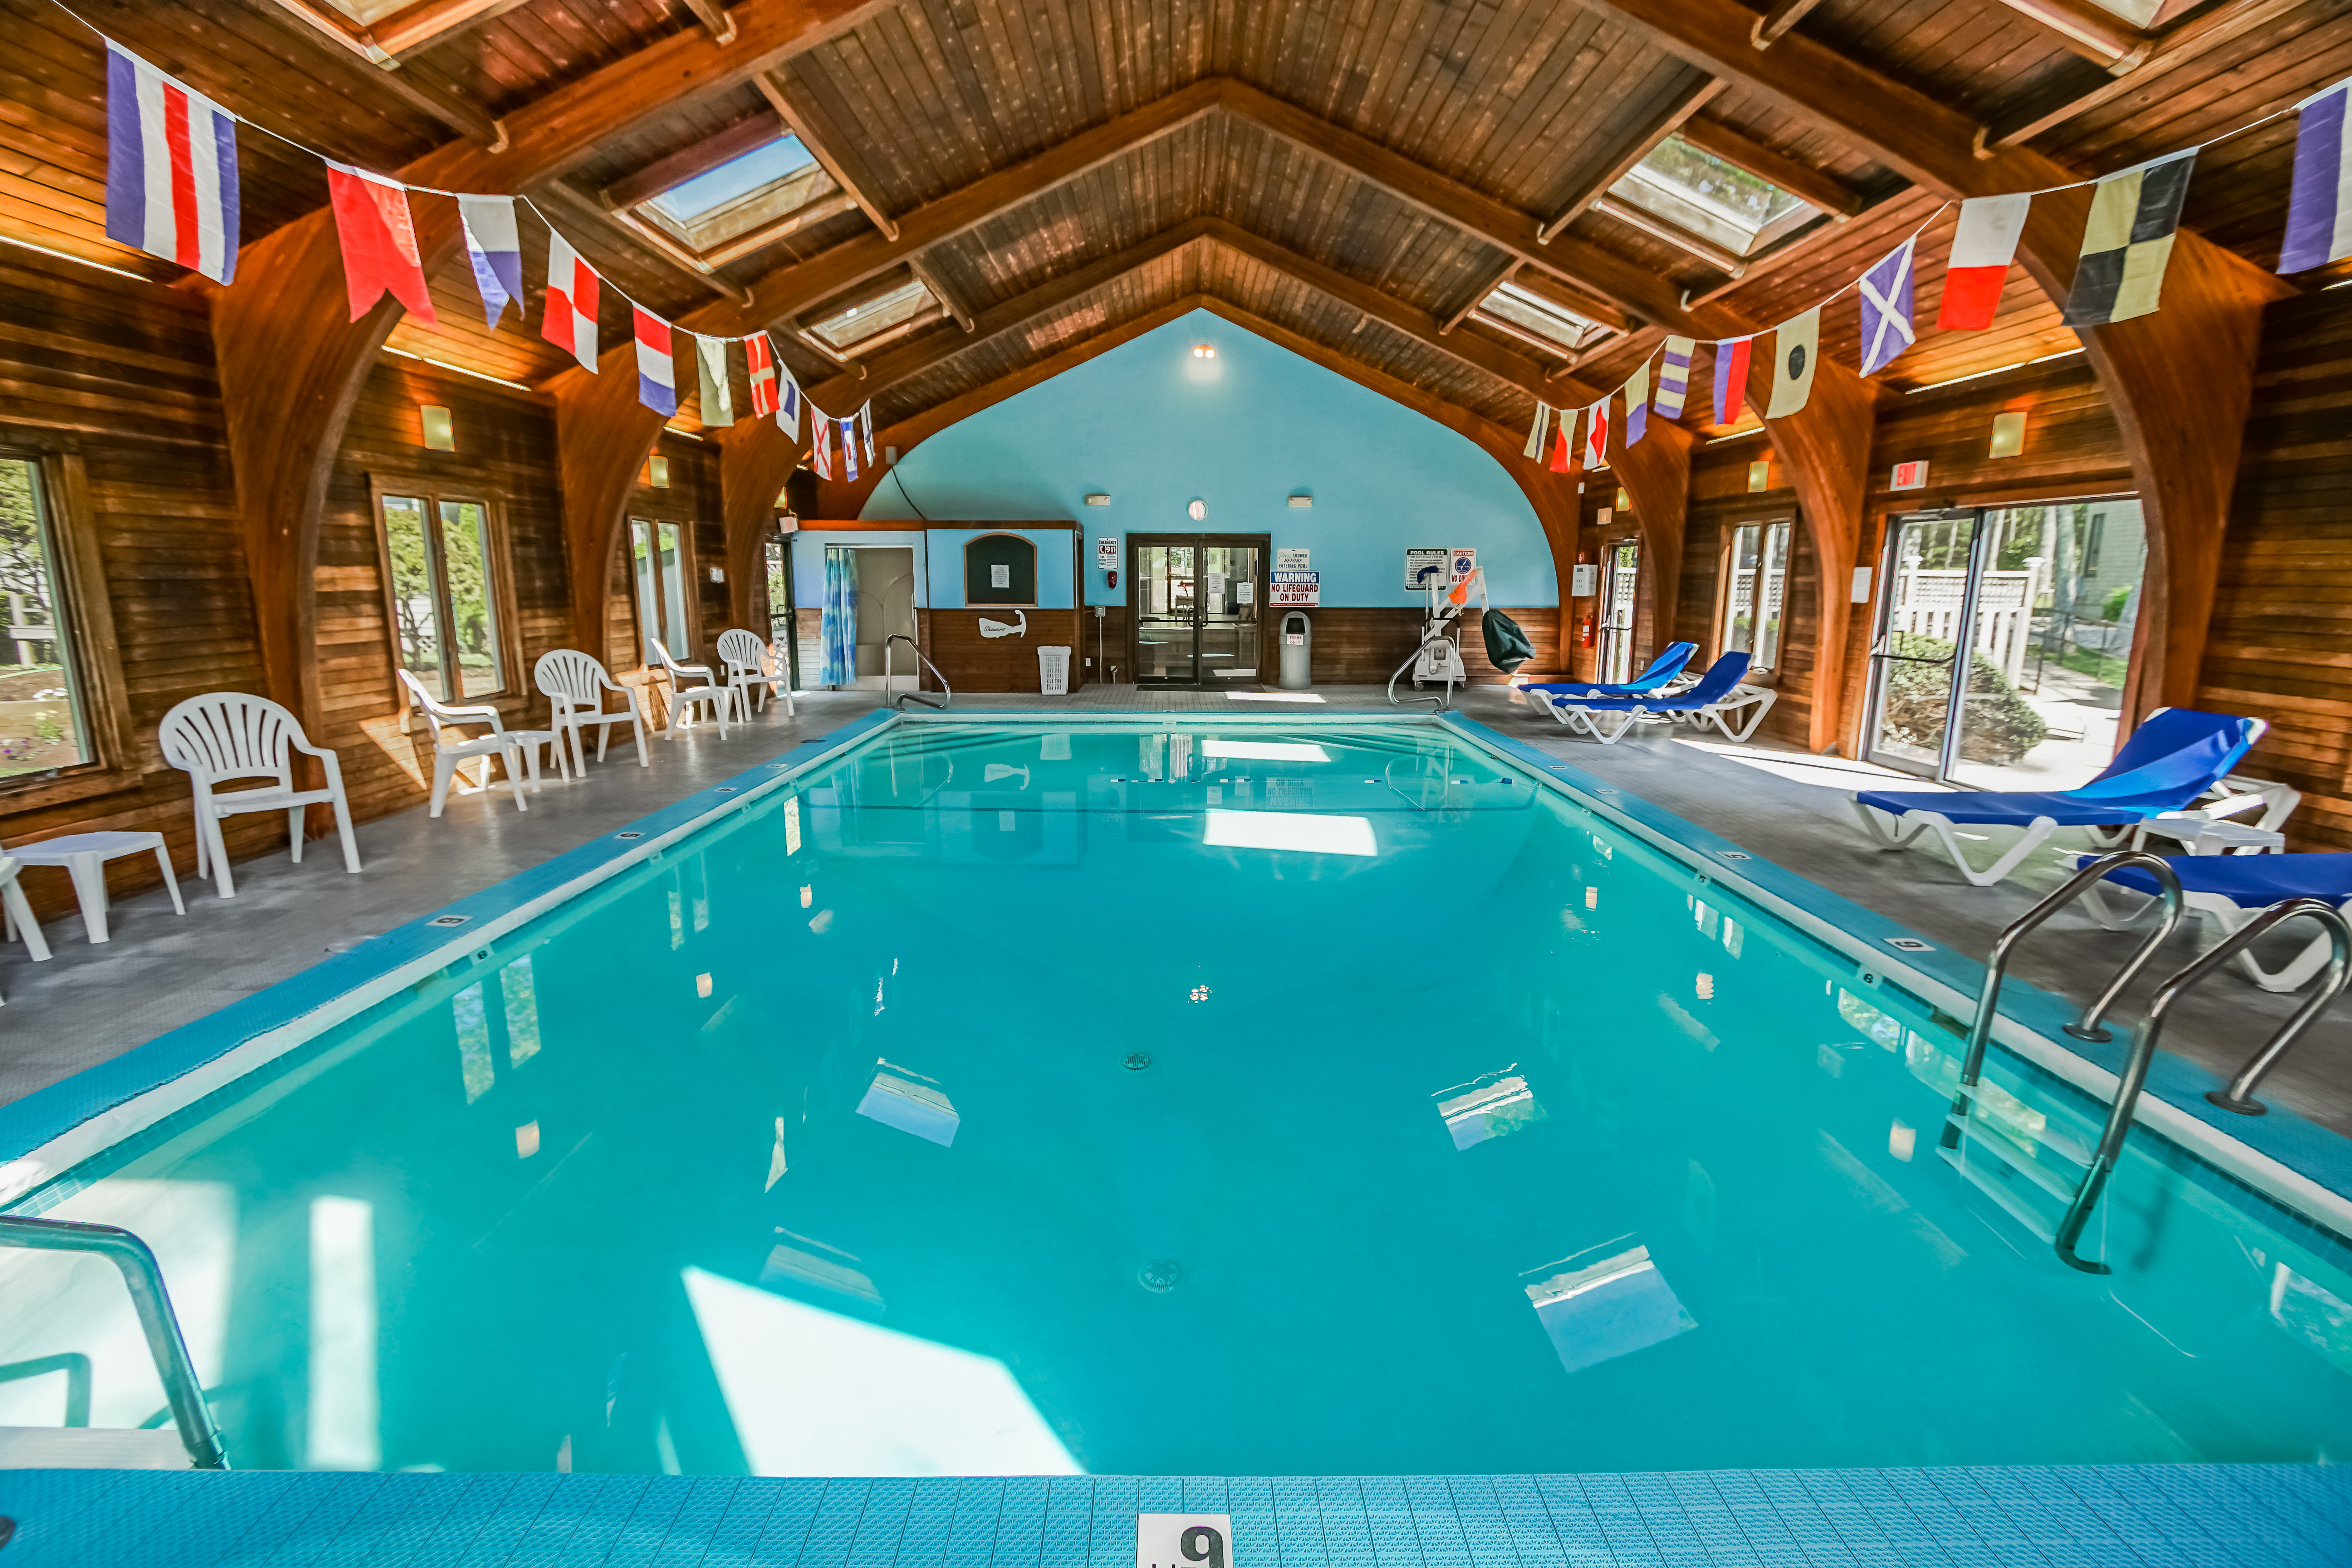 A serene view of the indoor pool at VRI's Cape Cod Holiday Estates in Massachusetts.